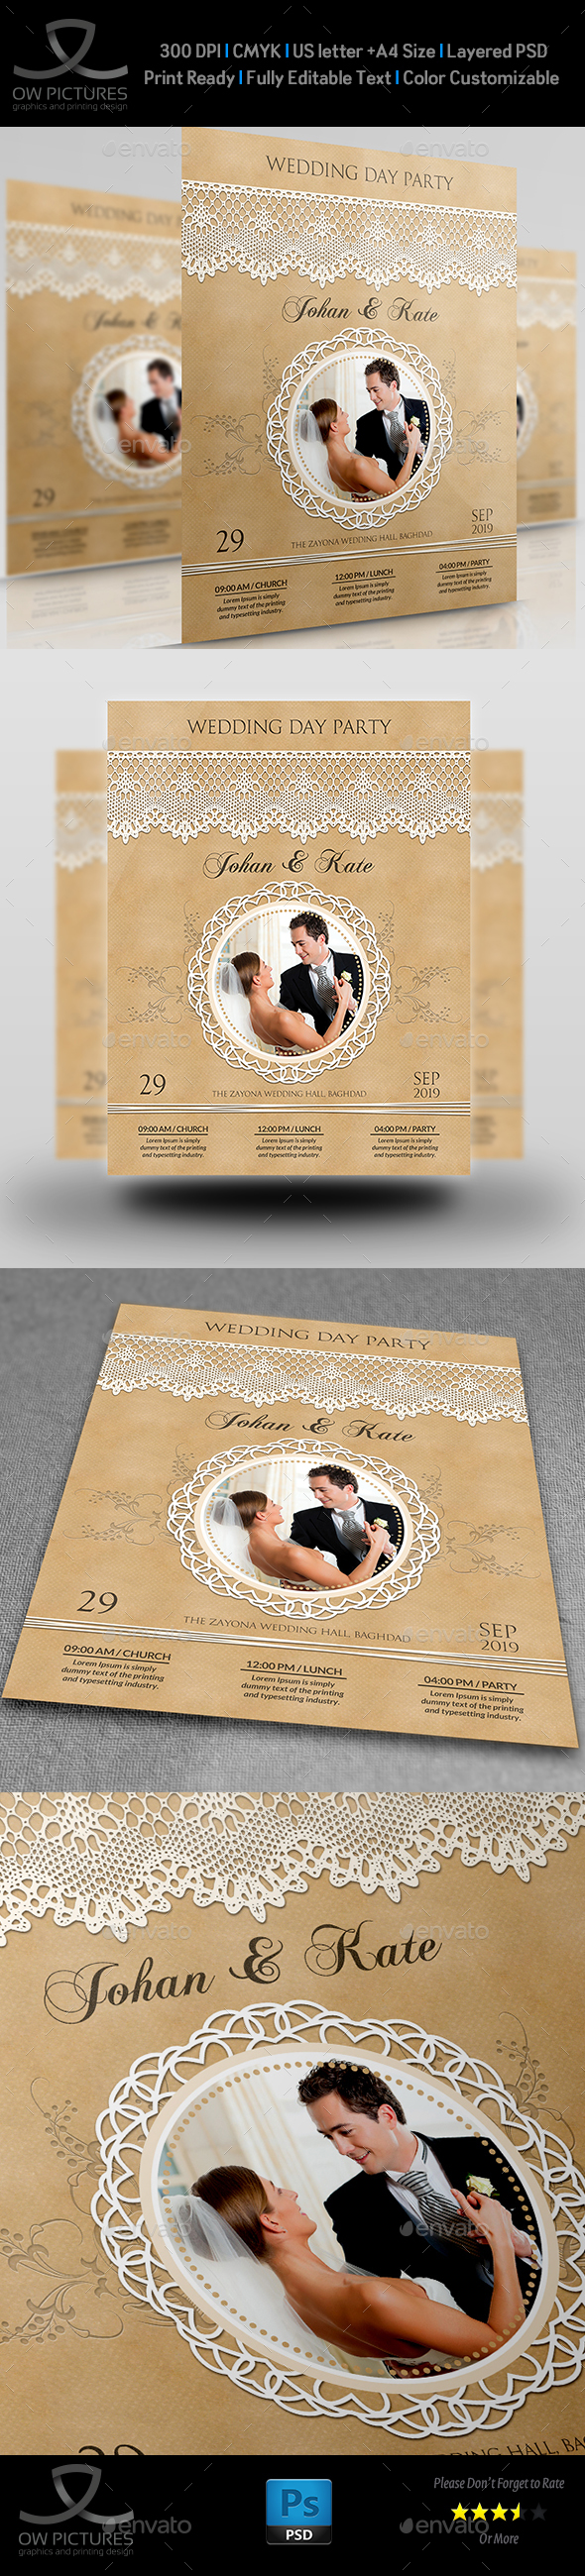 Wedding Party Flyer Template Vol.3